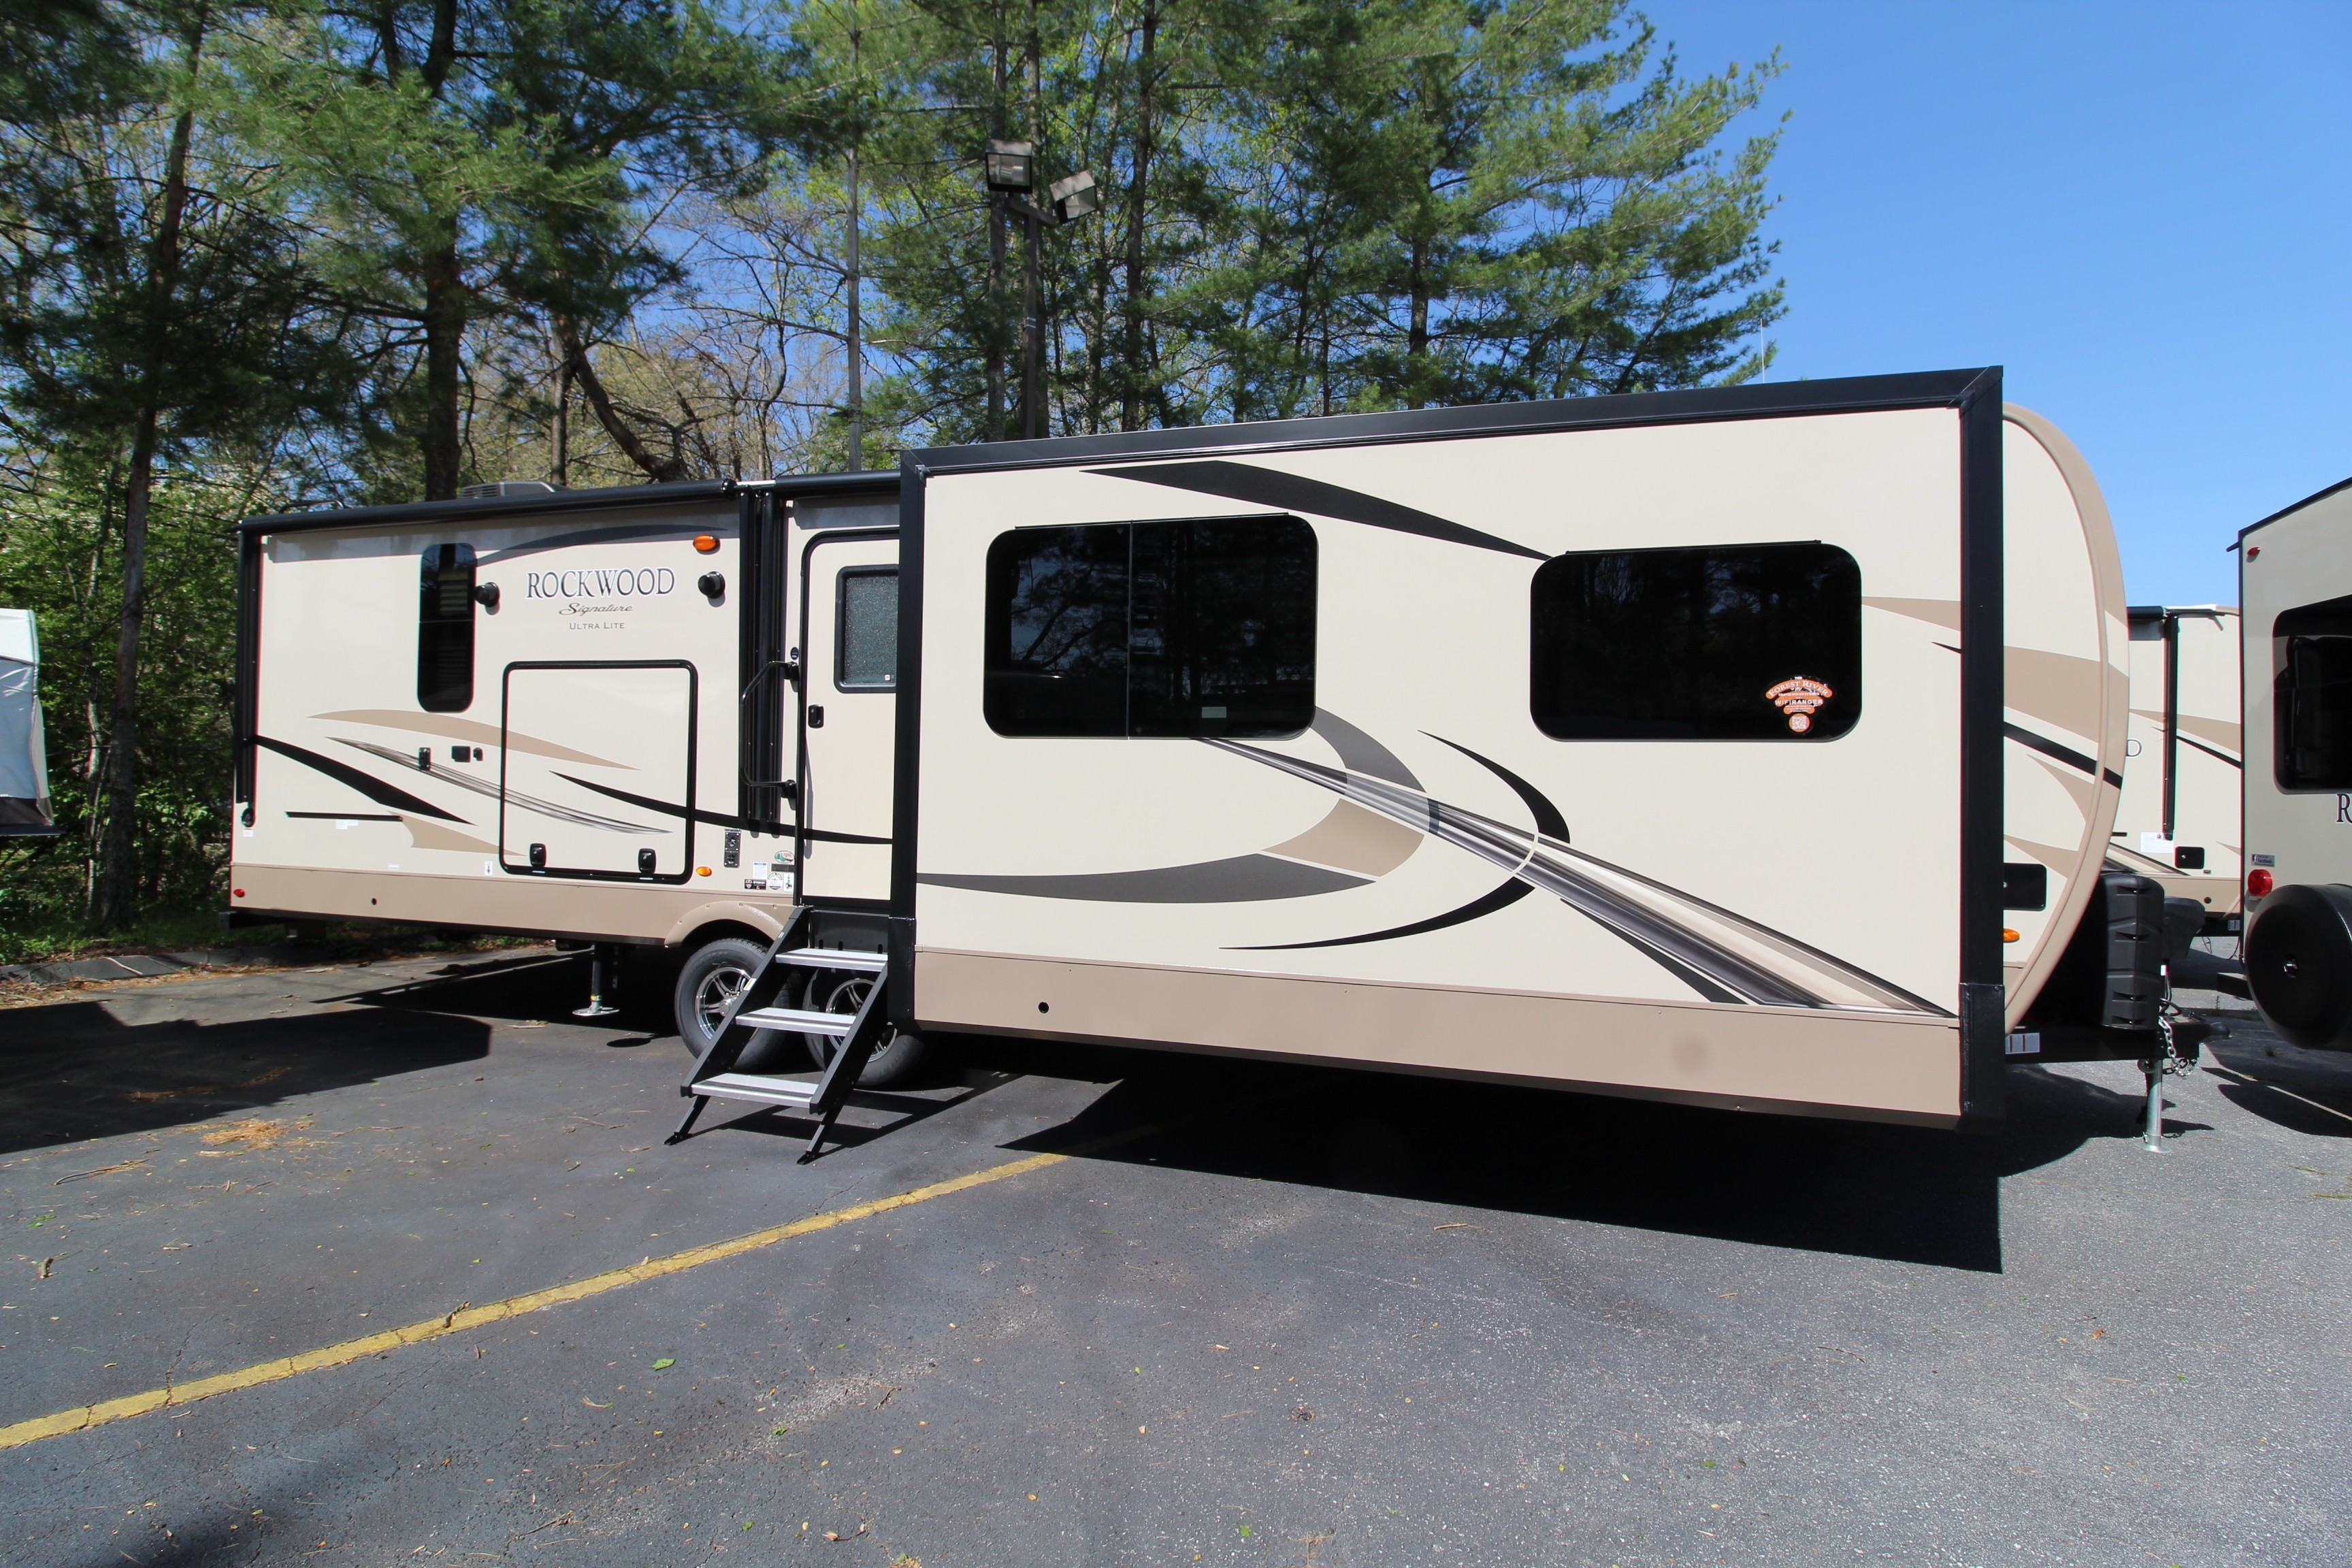 kitchens travel trailer ultra lighting light with outdoor awesome and wheel rv new outback lite used of trailers